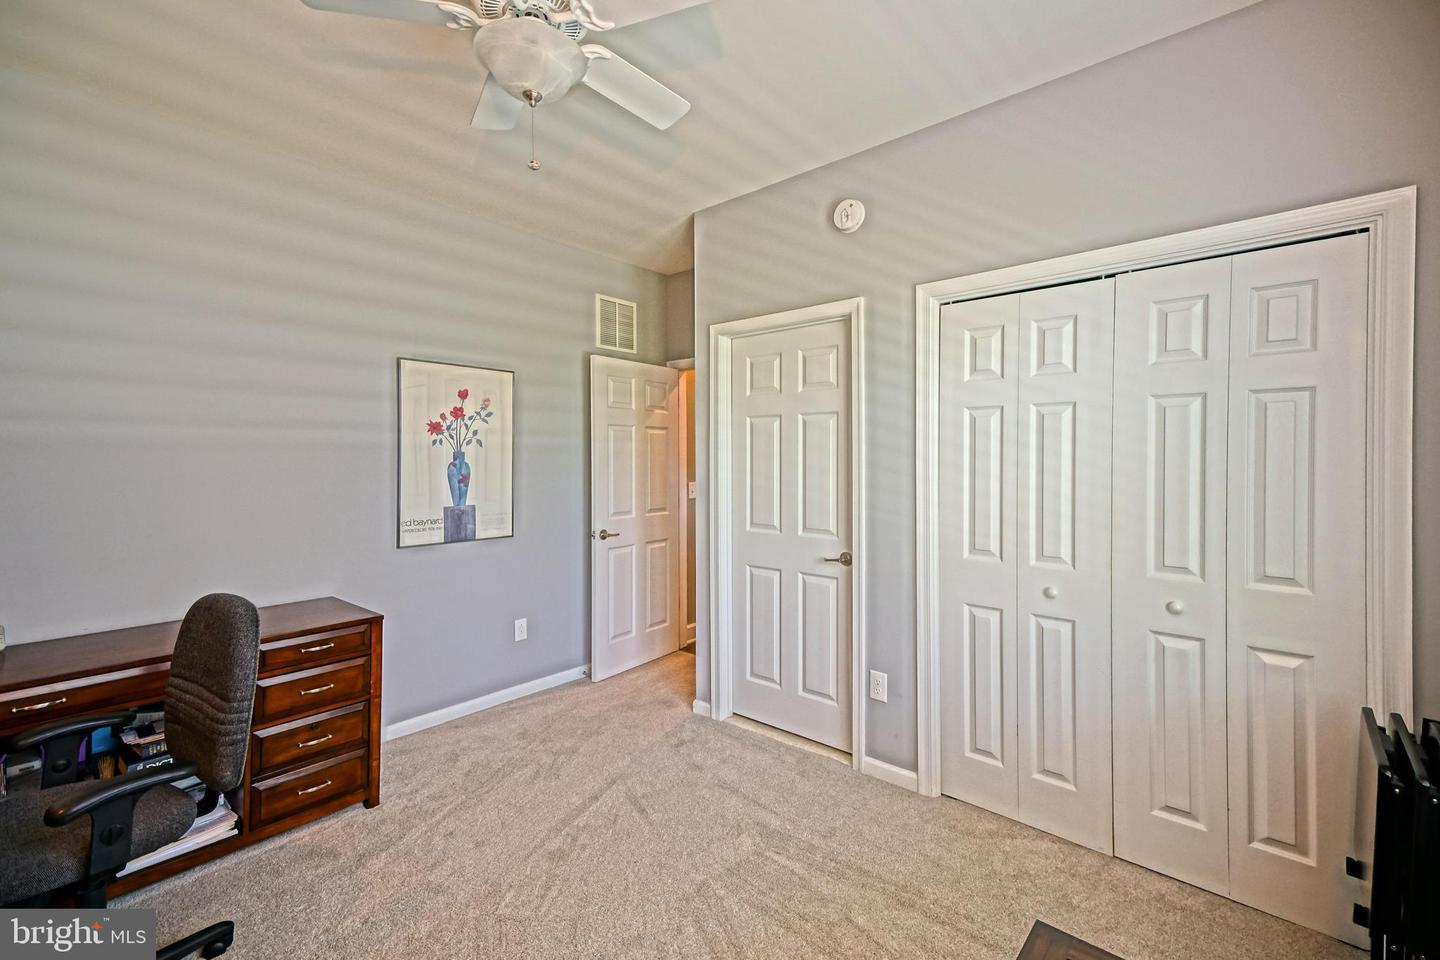 DESU139128-301667382737-2019-08-05-10-43-56 35222 Overfalls Dr N | Lewes, DE Real Estate For Sale | MLS# Desu139128  - Lee Ann Group